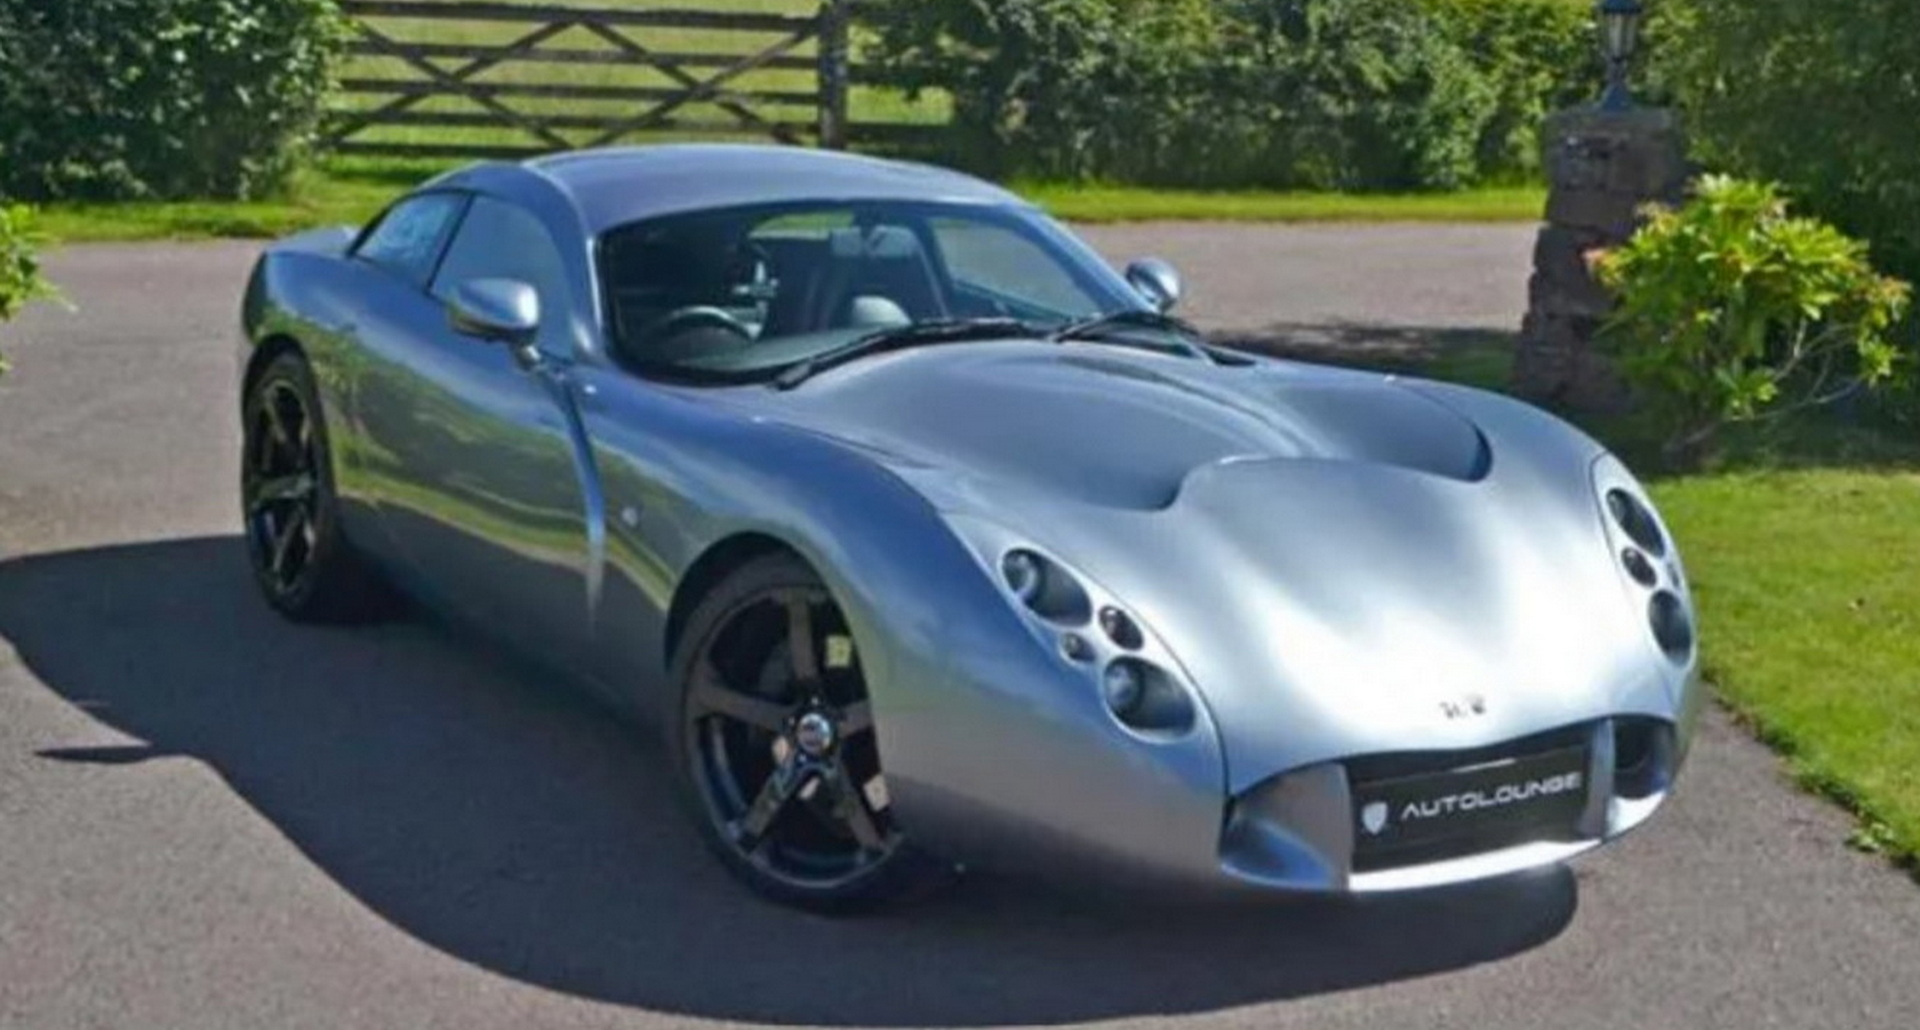 A one-off 2003 TVR T440R Coupe designed and built exclusively to homologate an endurance race car is available for purchase in the UK to anyone prepared to part with £192,990.